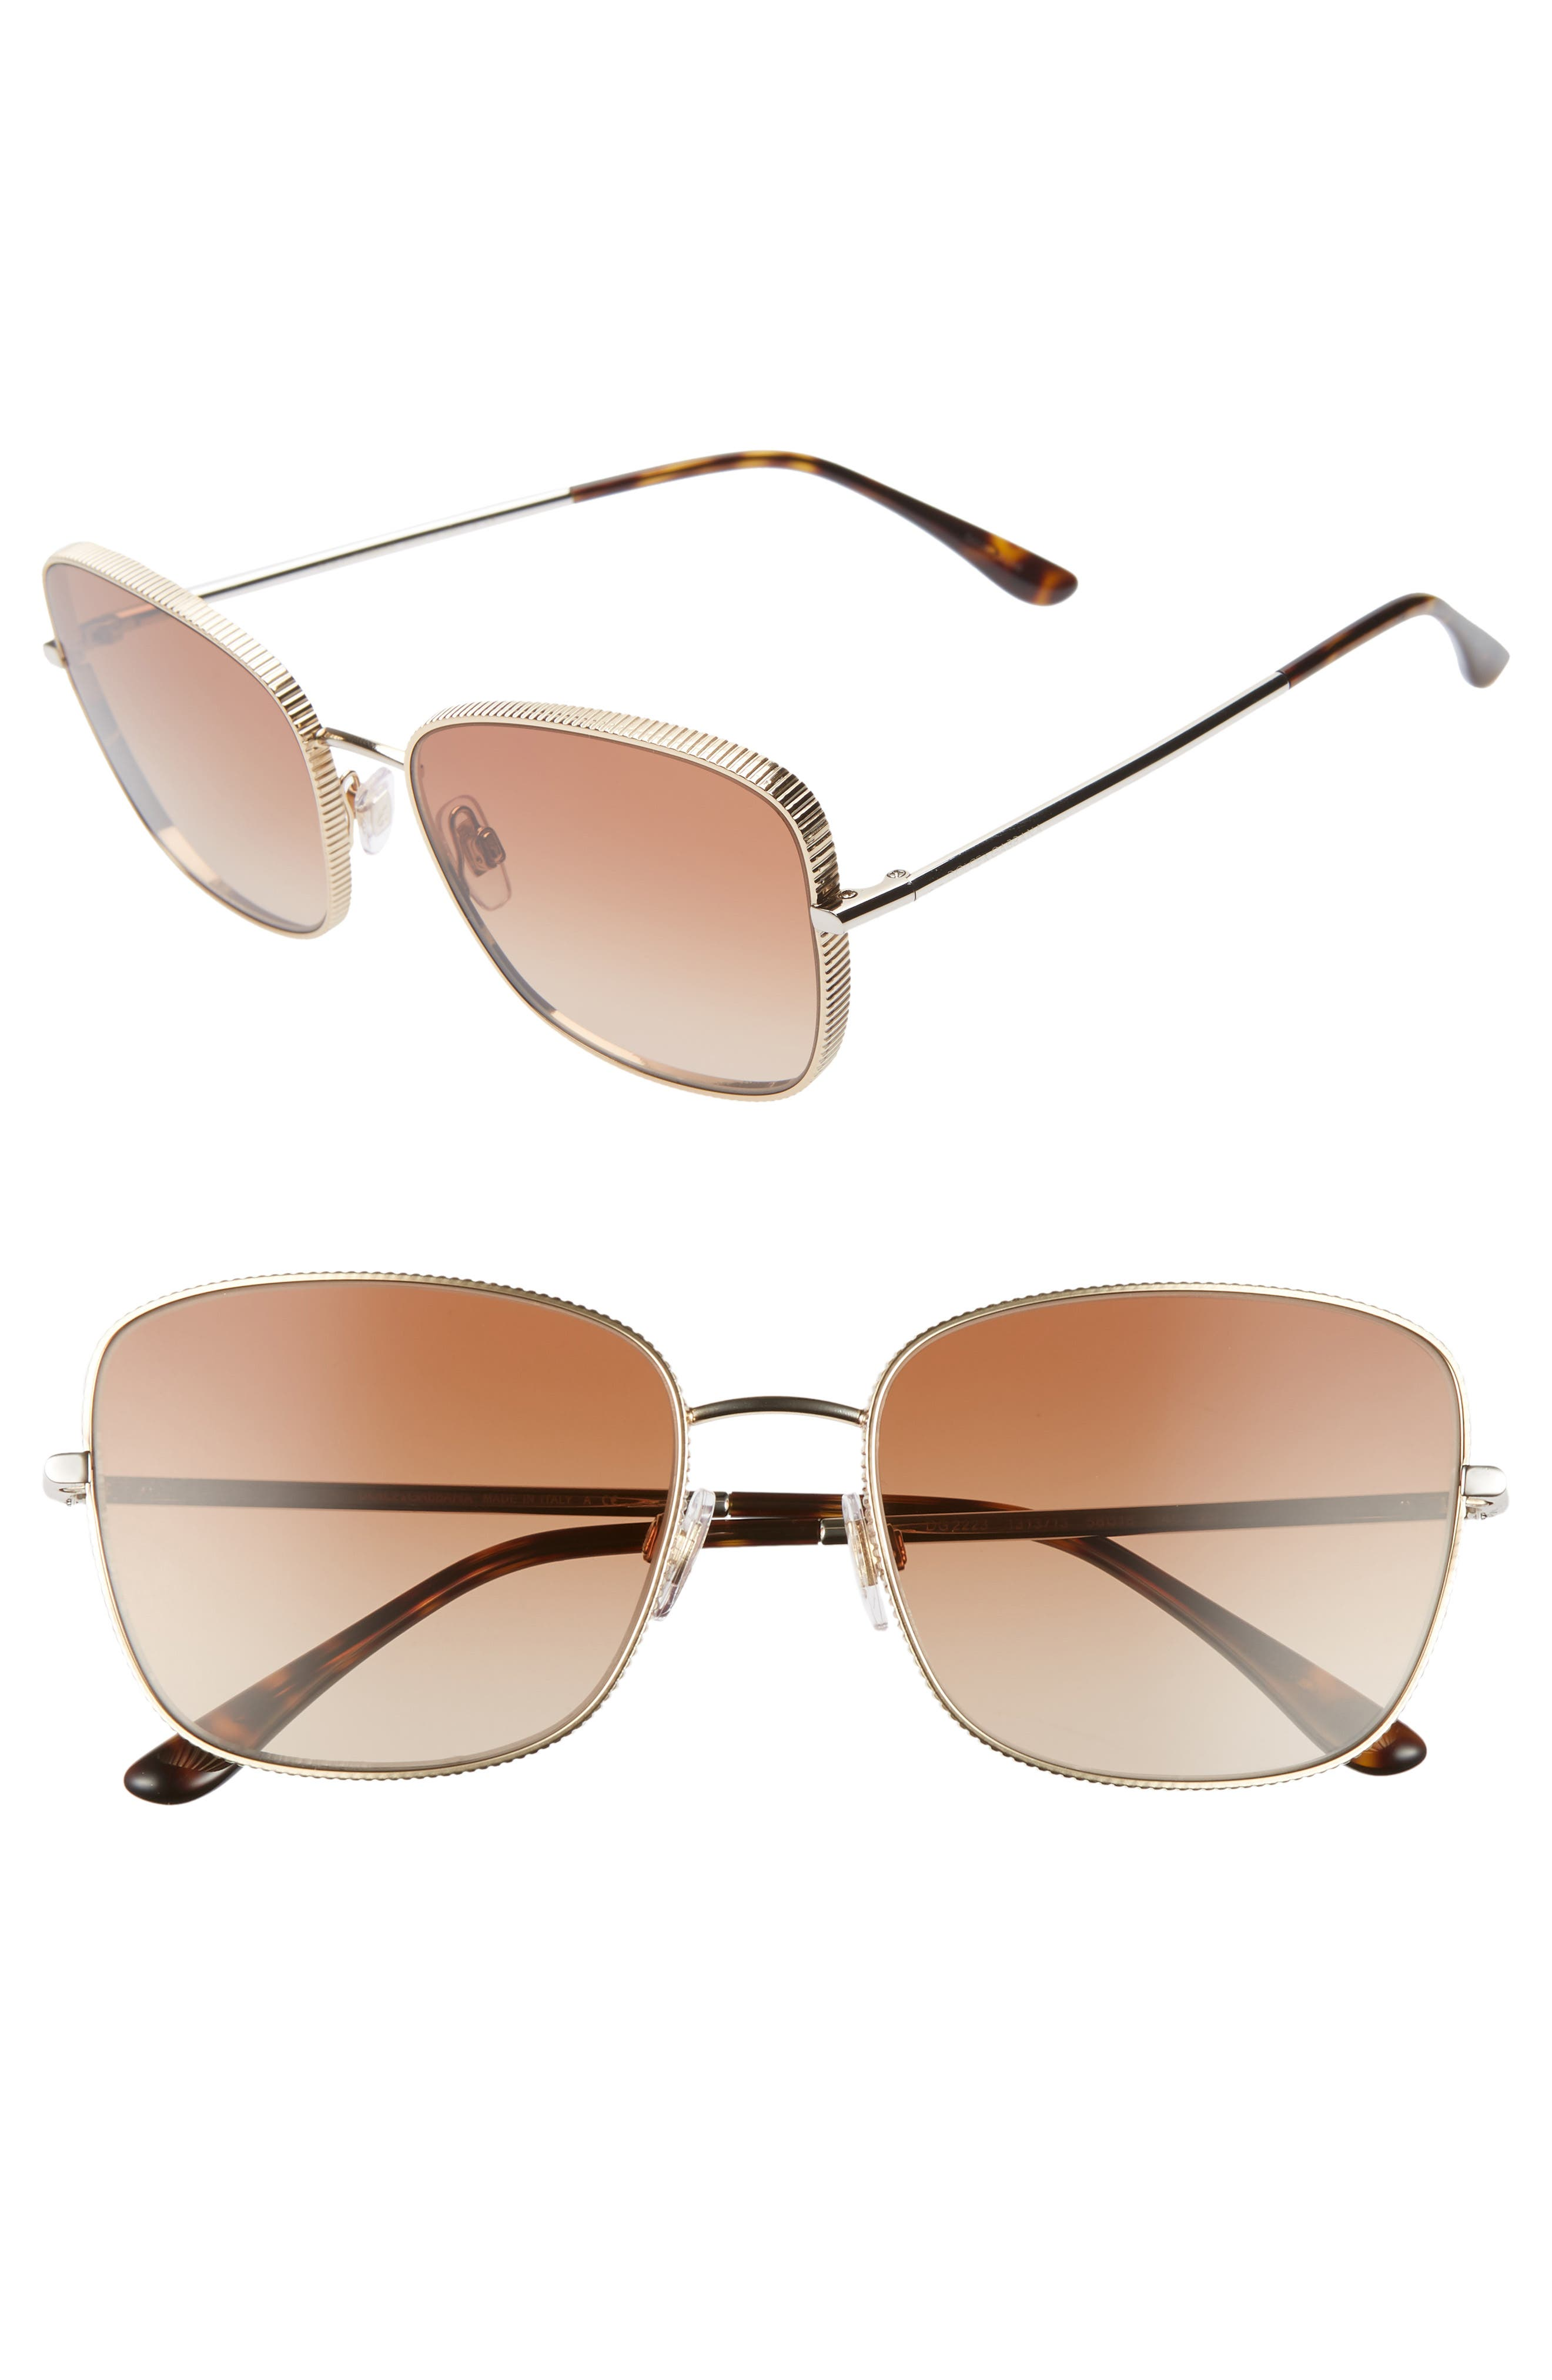 Dolce & gabbana 5m Gradient Butterfly Sunglasses - Gold/ Silver